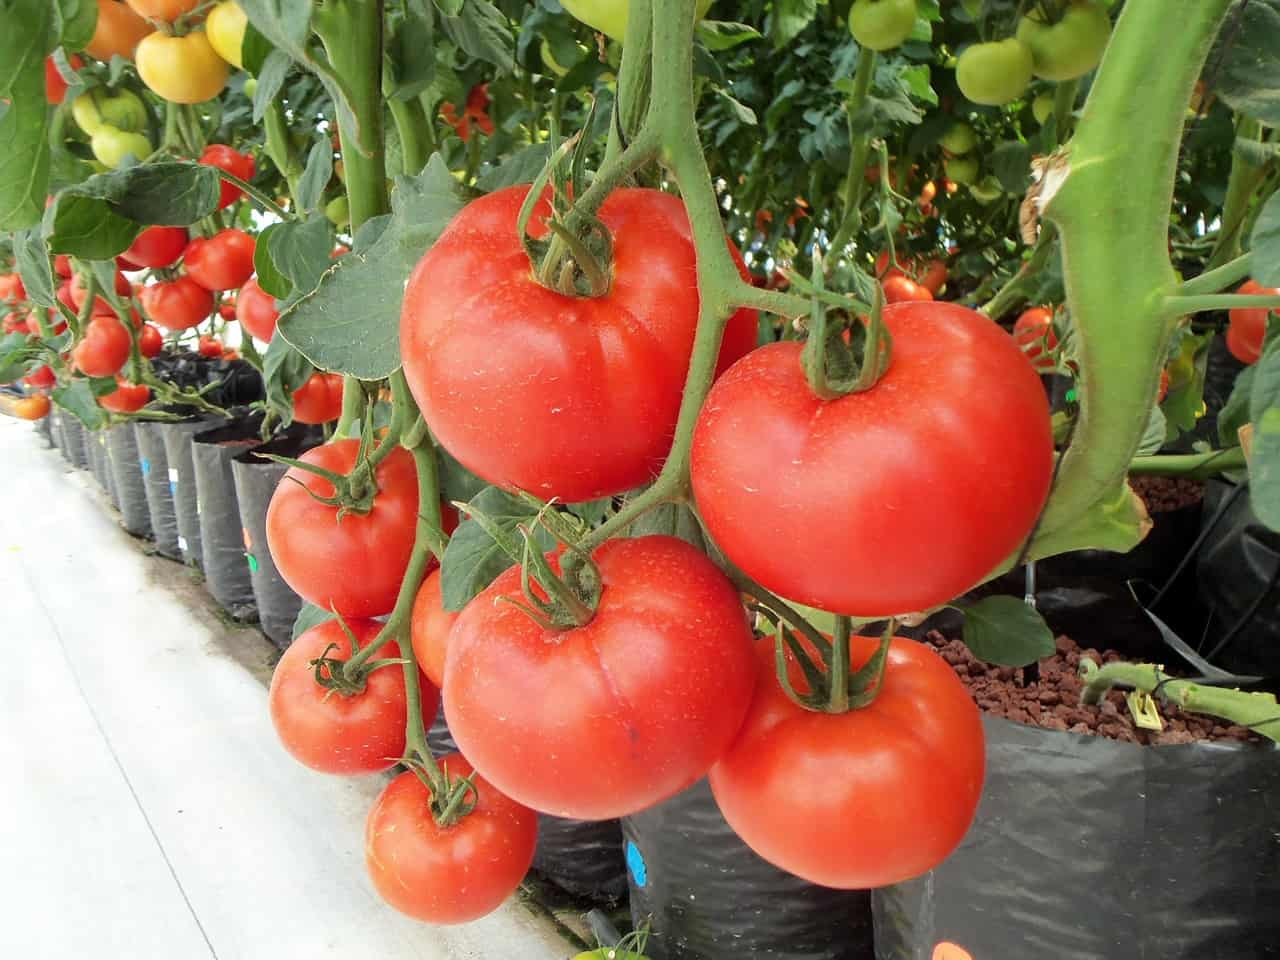 hydroponic warehouses - tomatoes culture